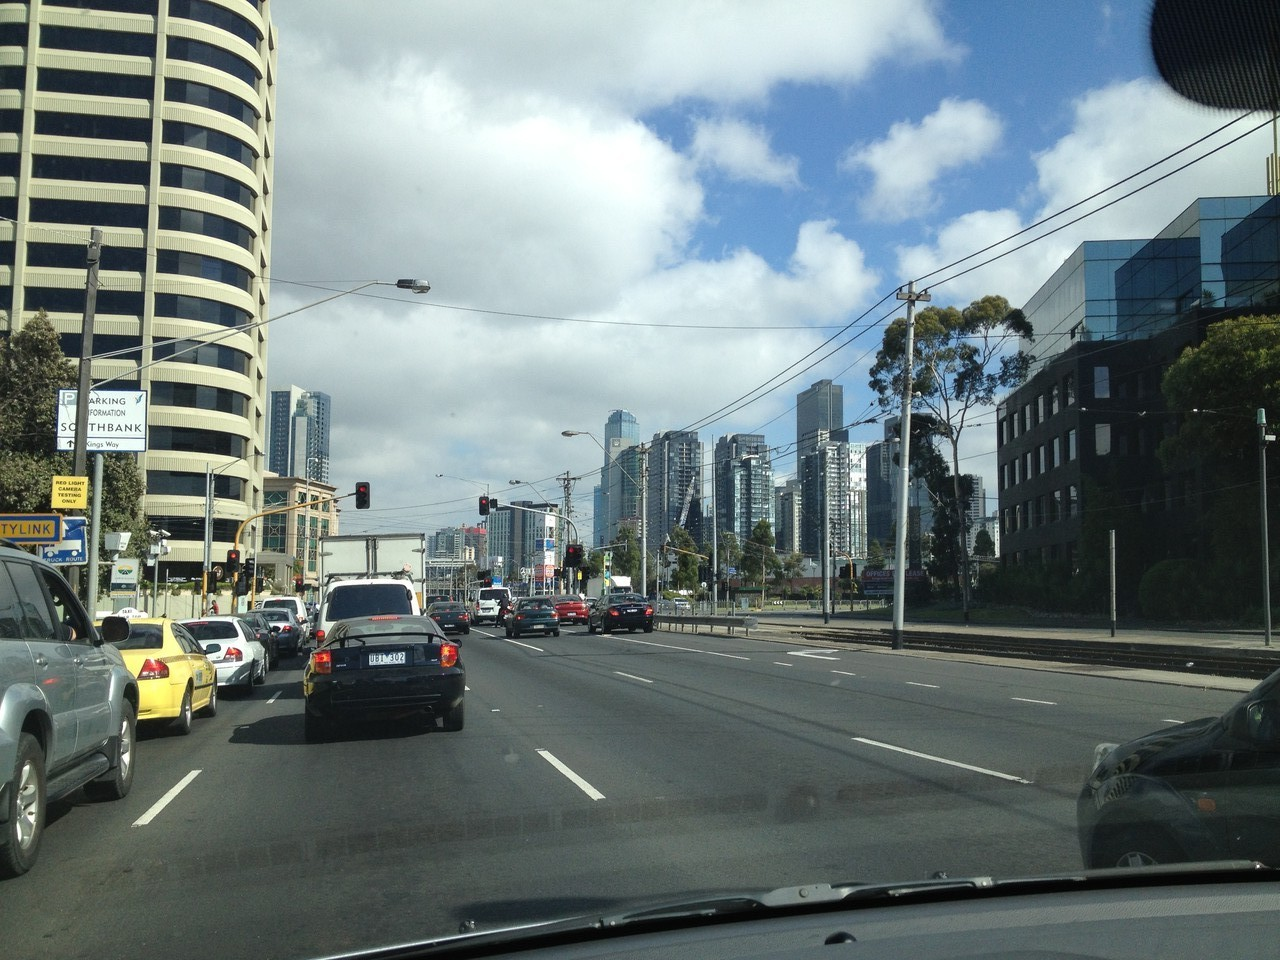 Leaving Melbourne, impressive city